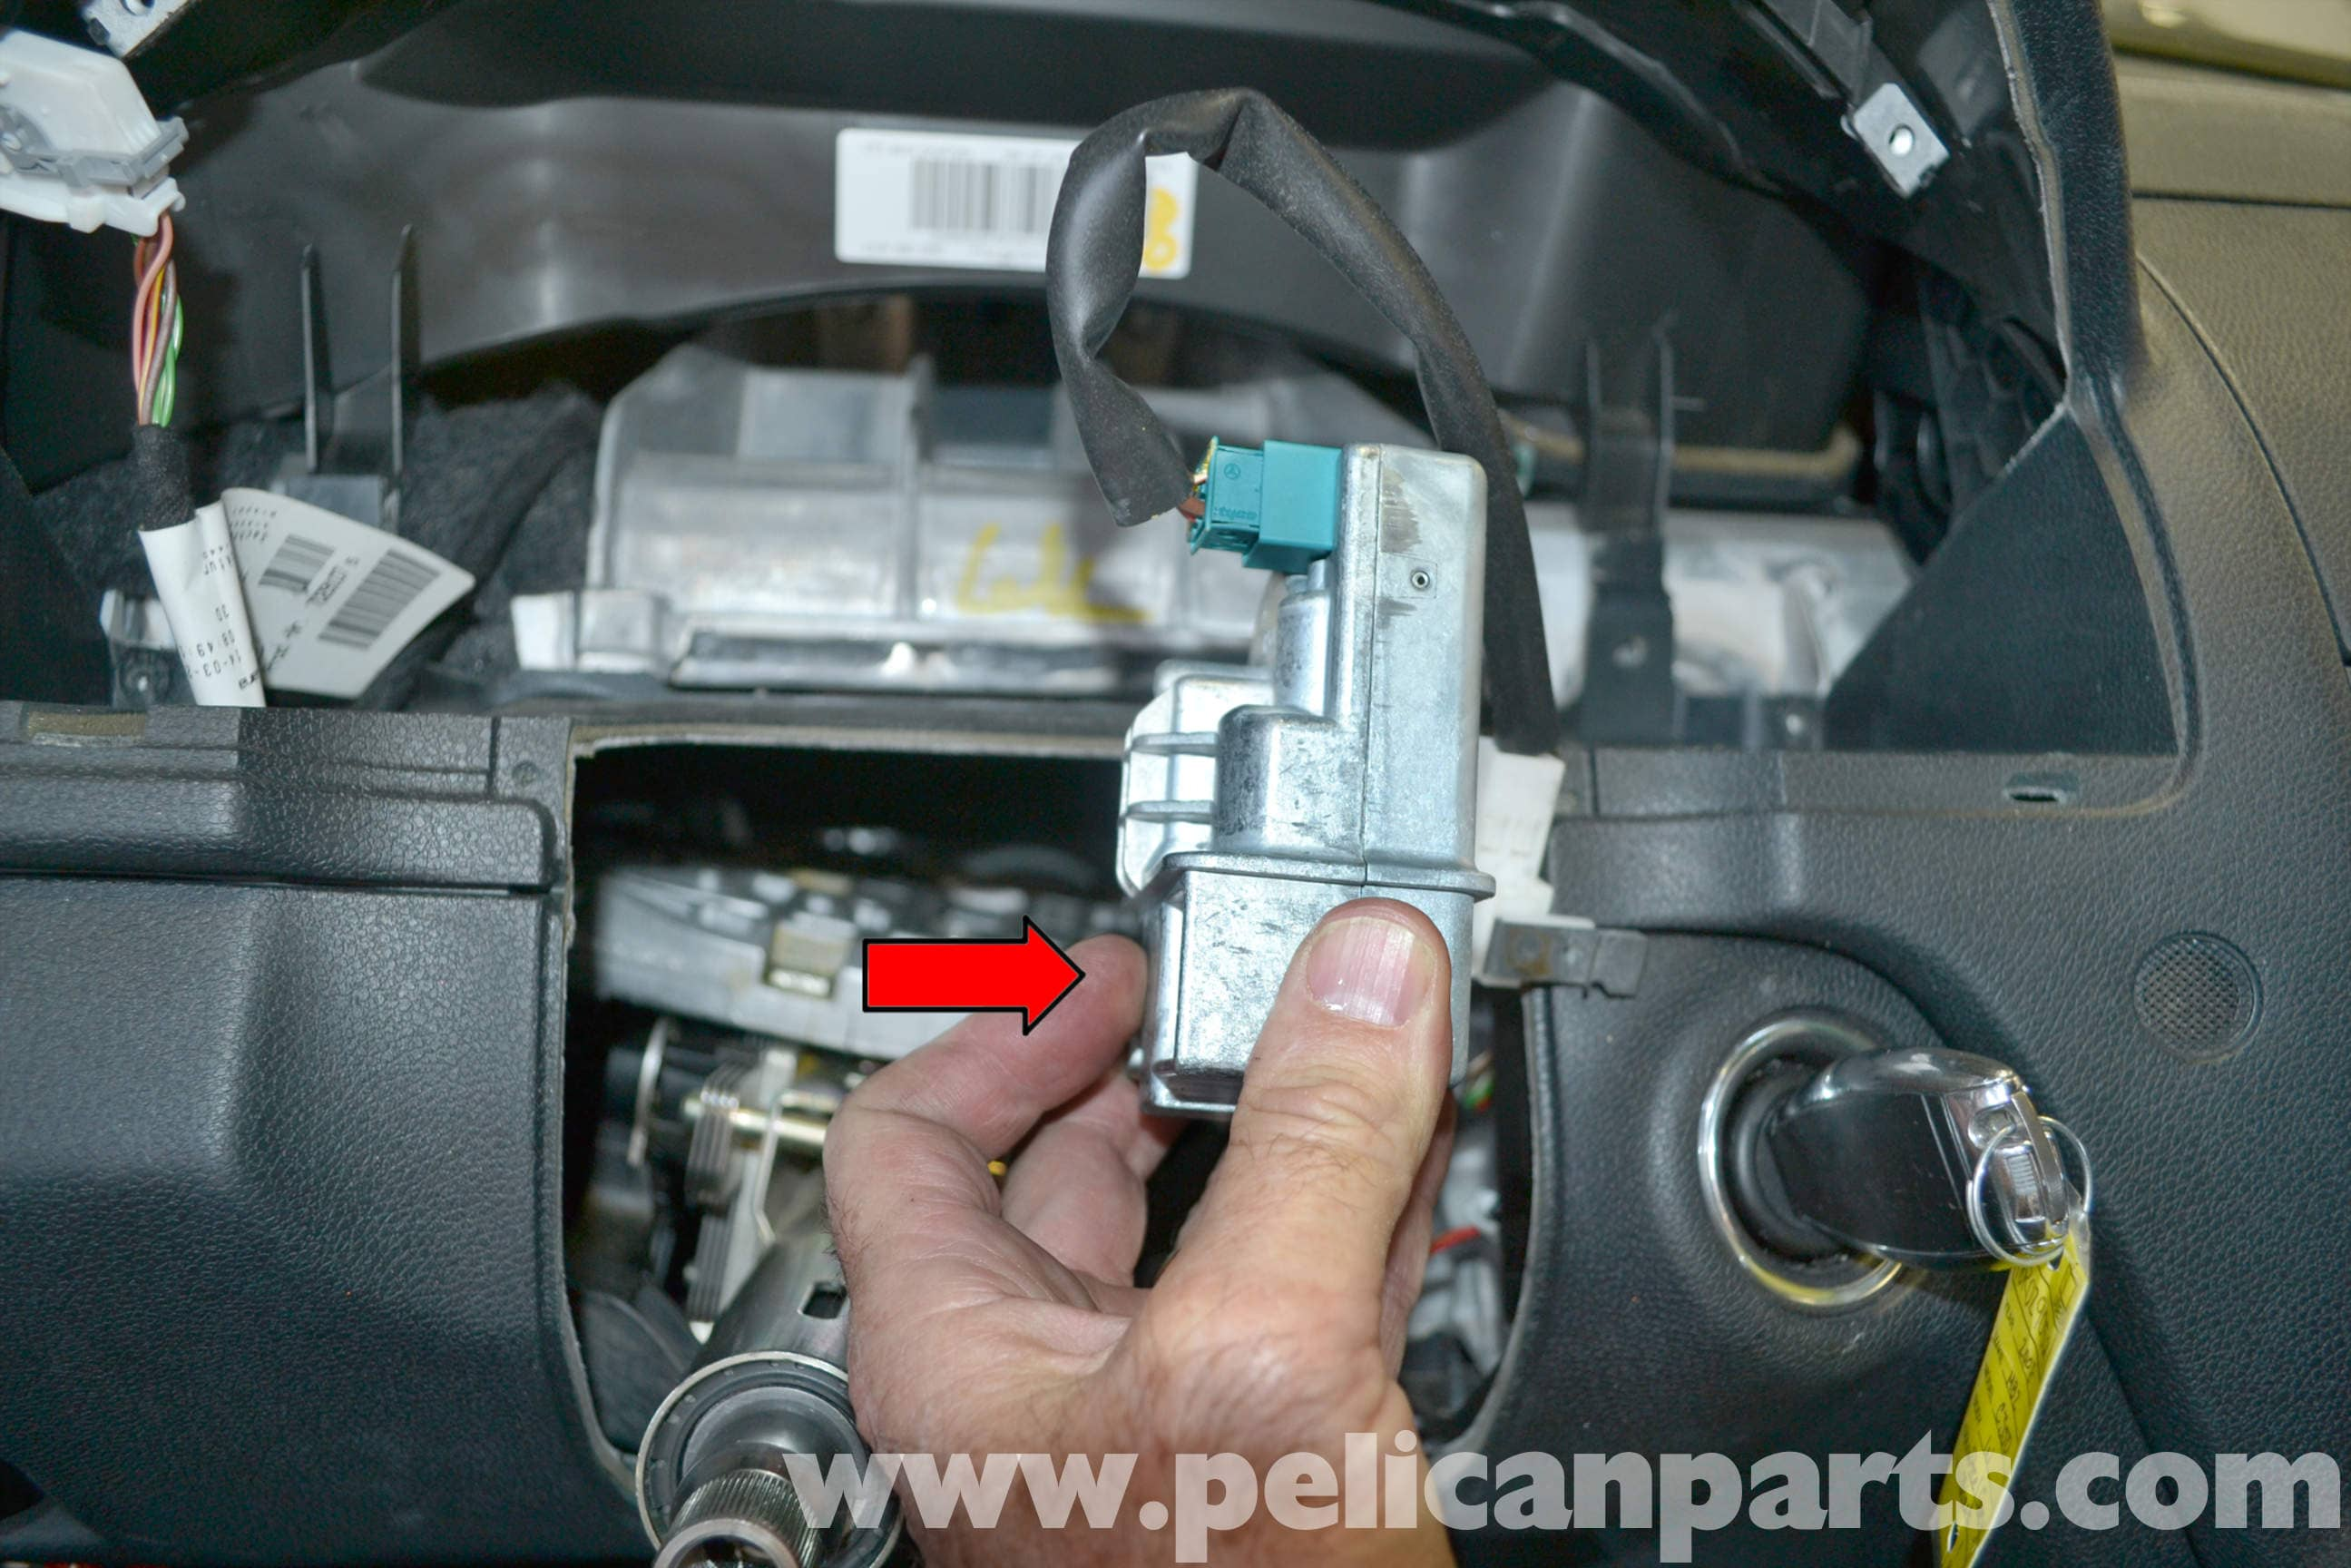 Mercedes-Benz W204 Electronic Steering Lock Replacement